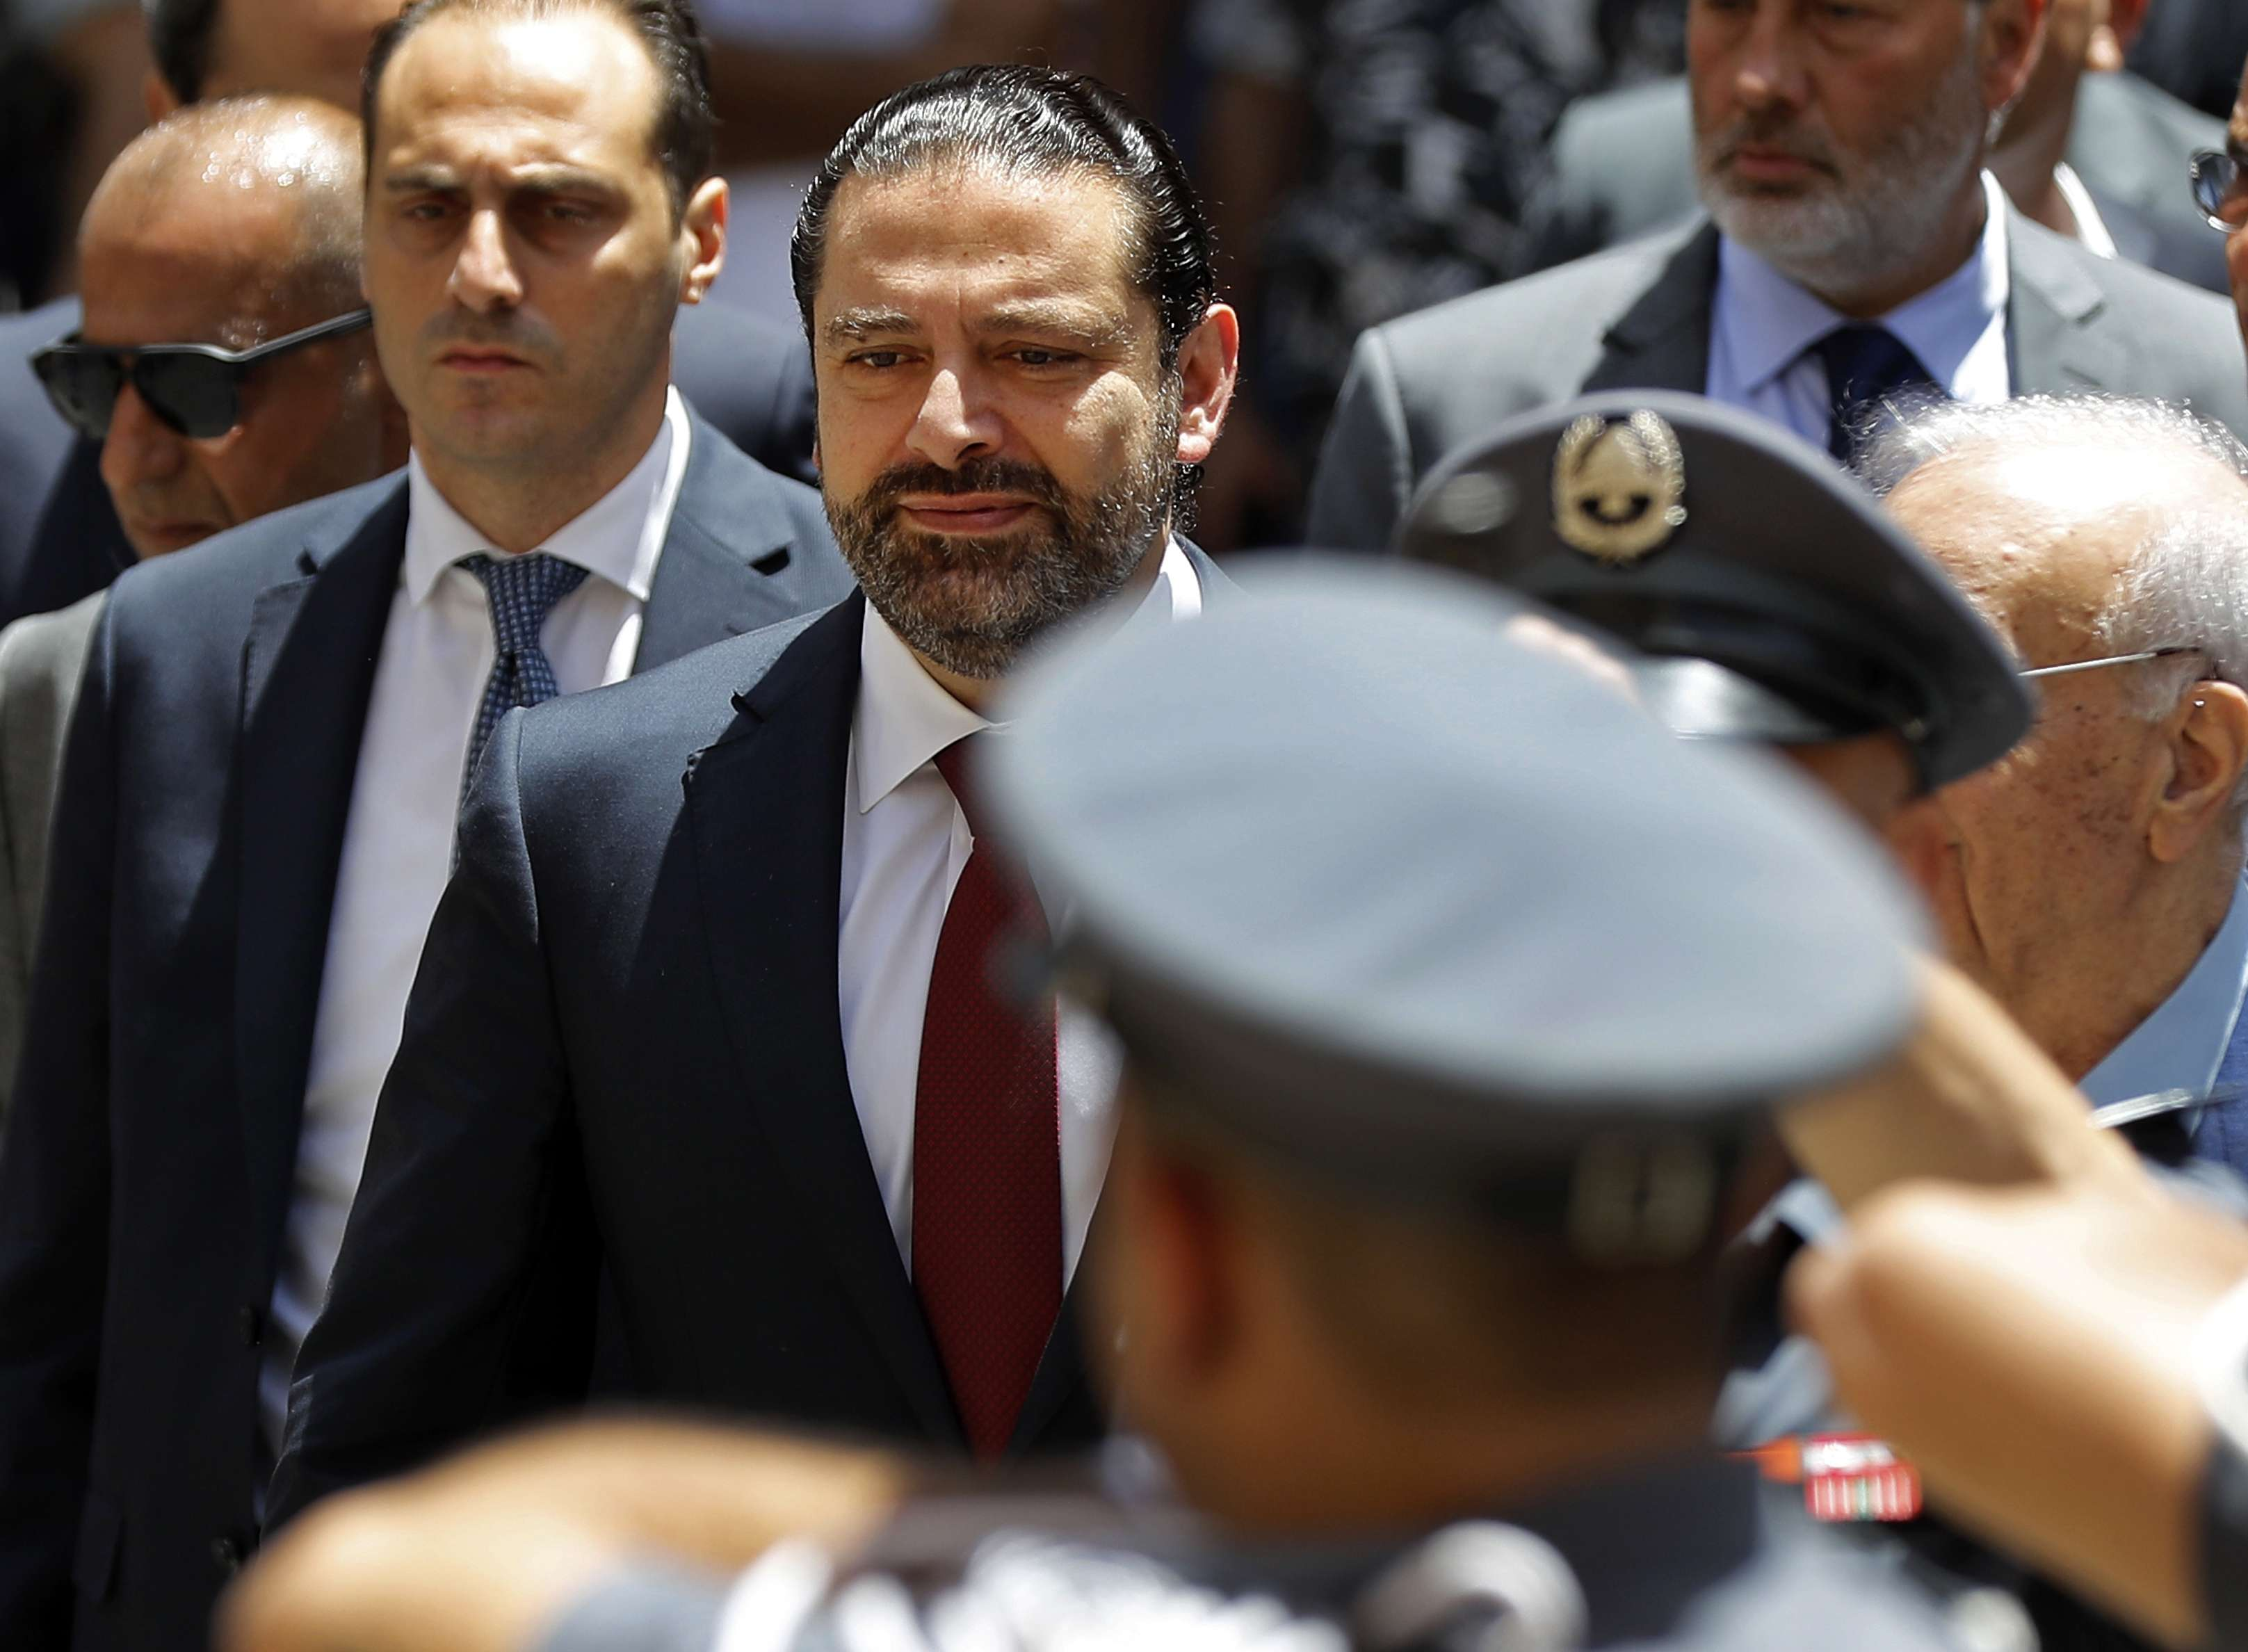 Challenging task. Lebanese Prime Minister Saad Hariri arrives at the Lebanese parliament to attend a session for the election of the House speaker in Beirut, on May 23. (Reuters)